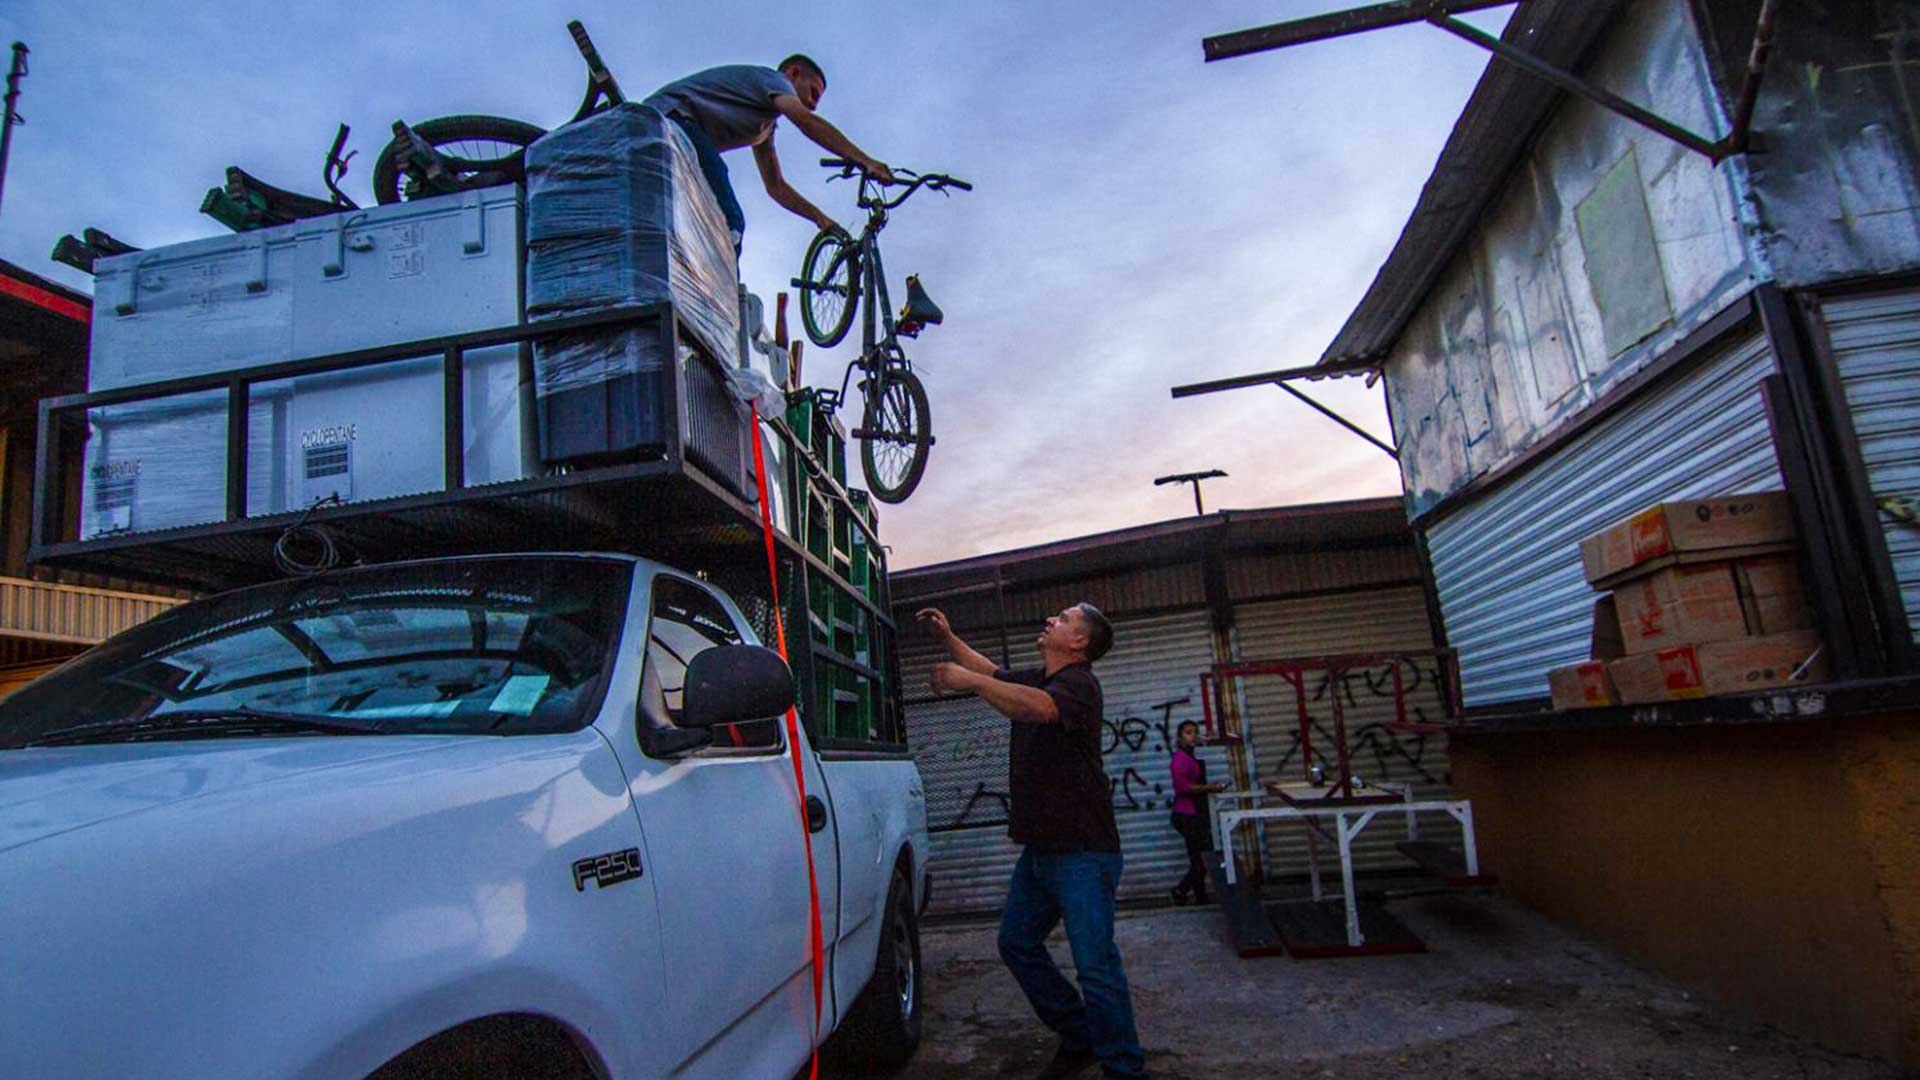 Benito Encinas' teenage son, Emilio, hands him a bicycle from the top of a recent load of used Arizona goods that he brought back to the Hector Espino Tianguis.